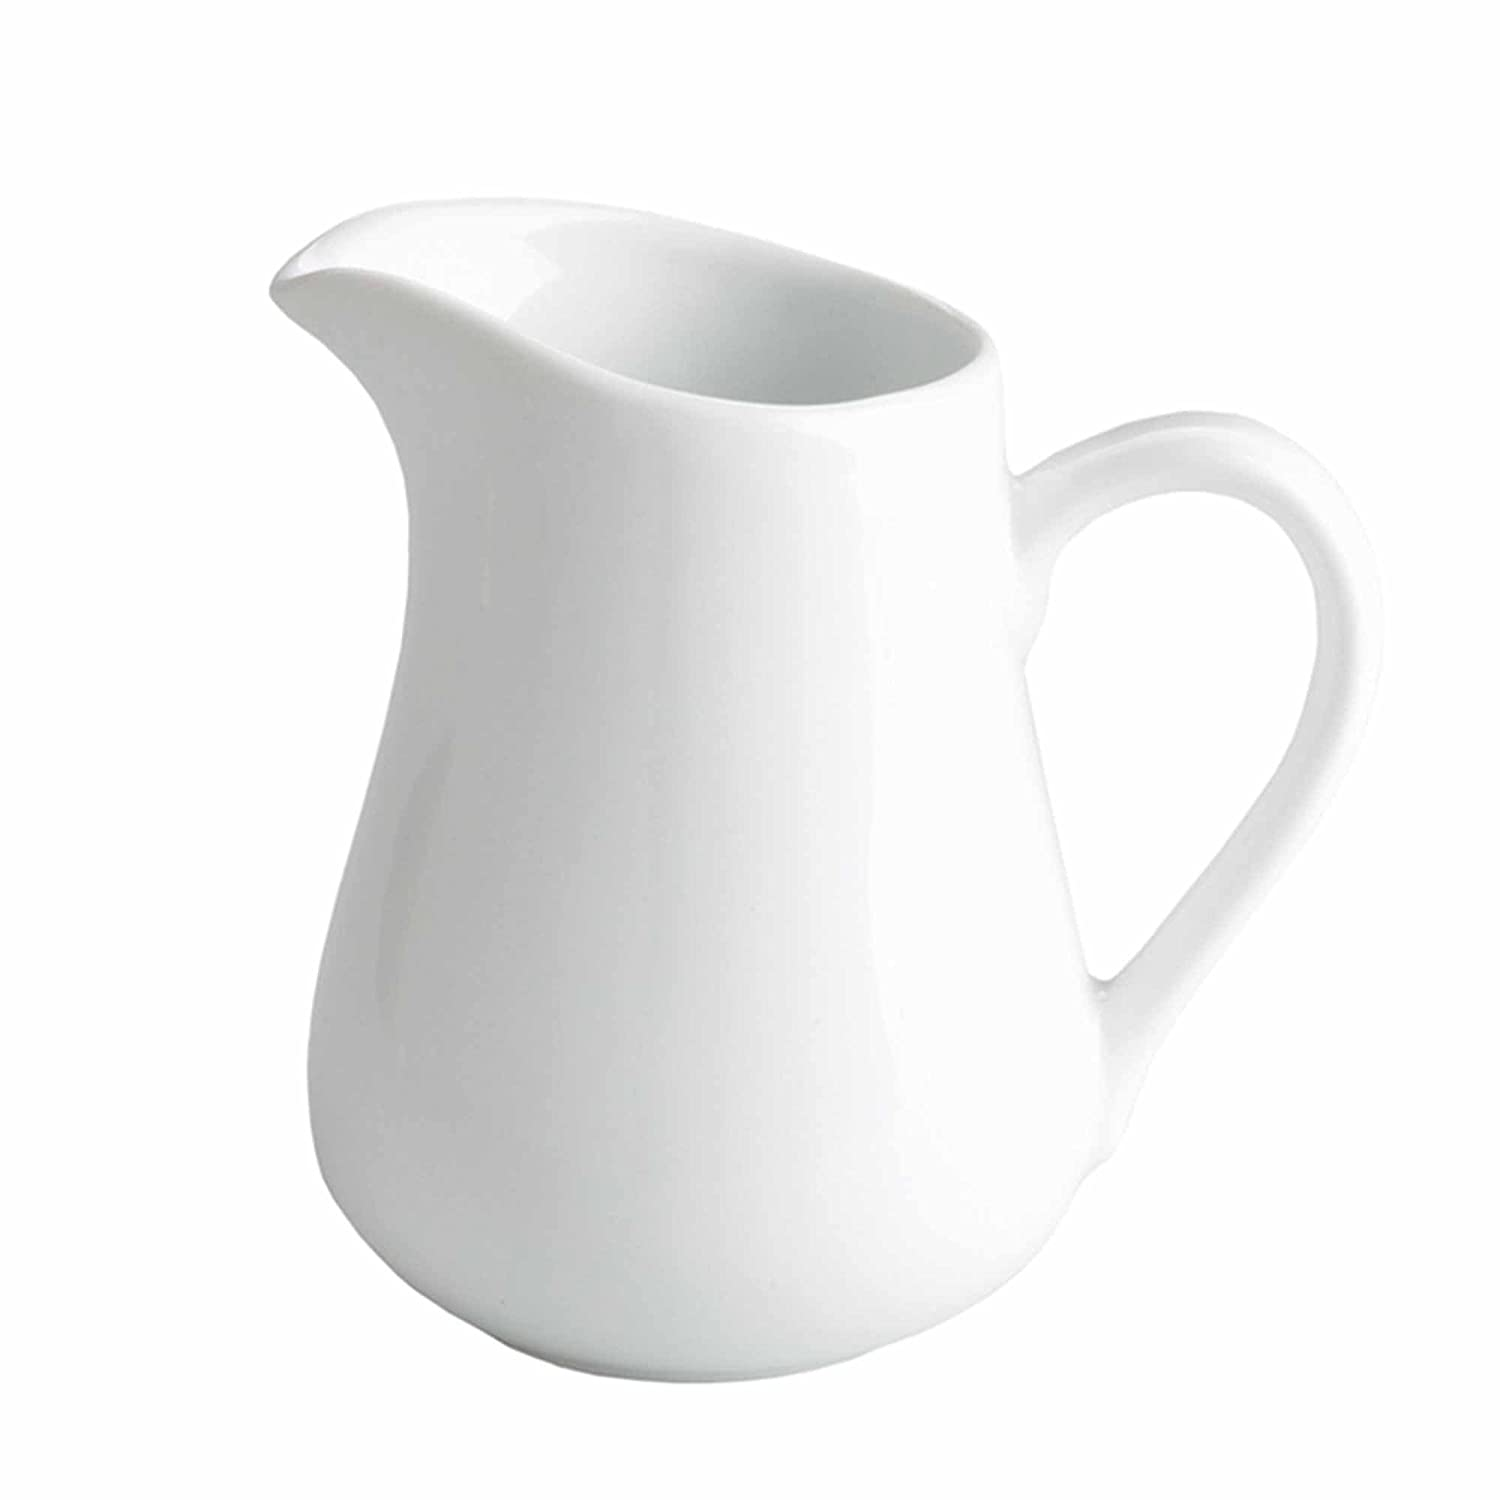 Soler Hispania m276606 – Milk Jug Porcelain 22 cl